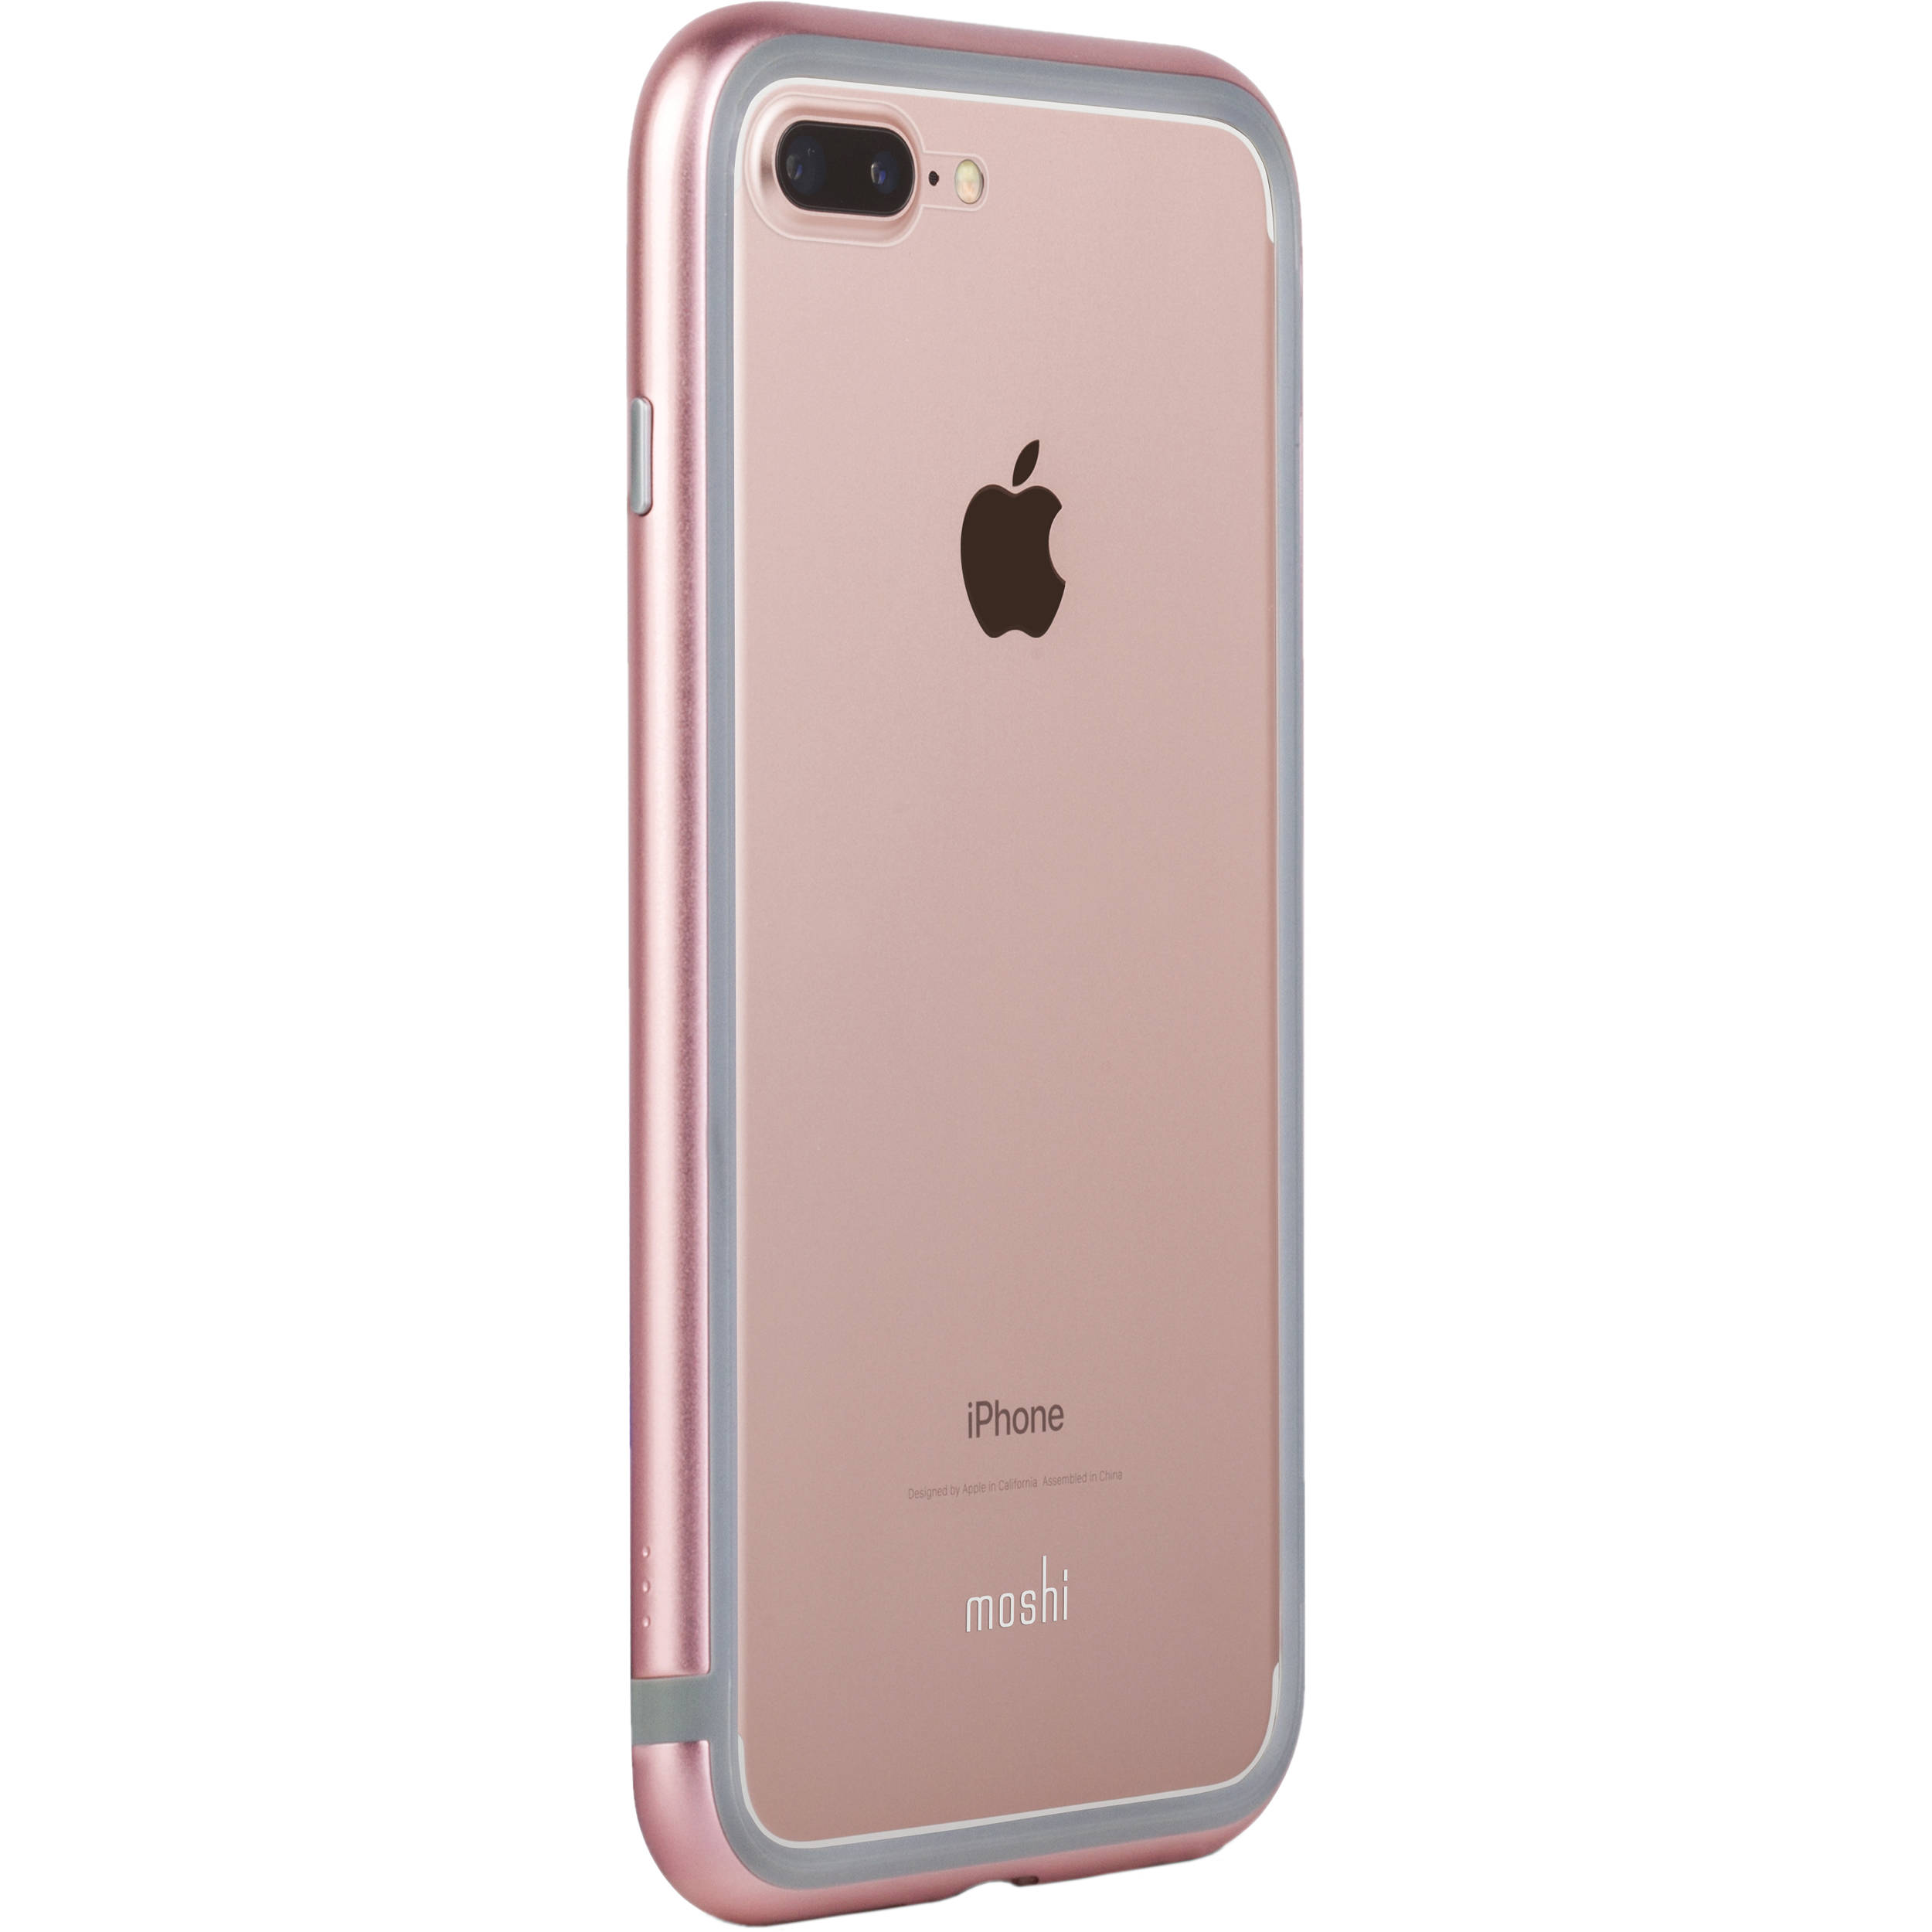 moshi luxe metal bumper case for iphone 7 plus pink 99mo090302. Black Bedroom Furniture Sets. Home Design Ideas